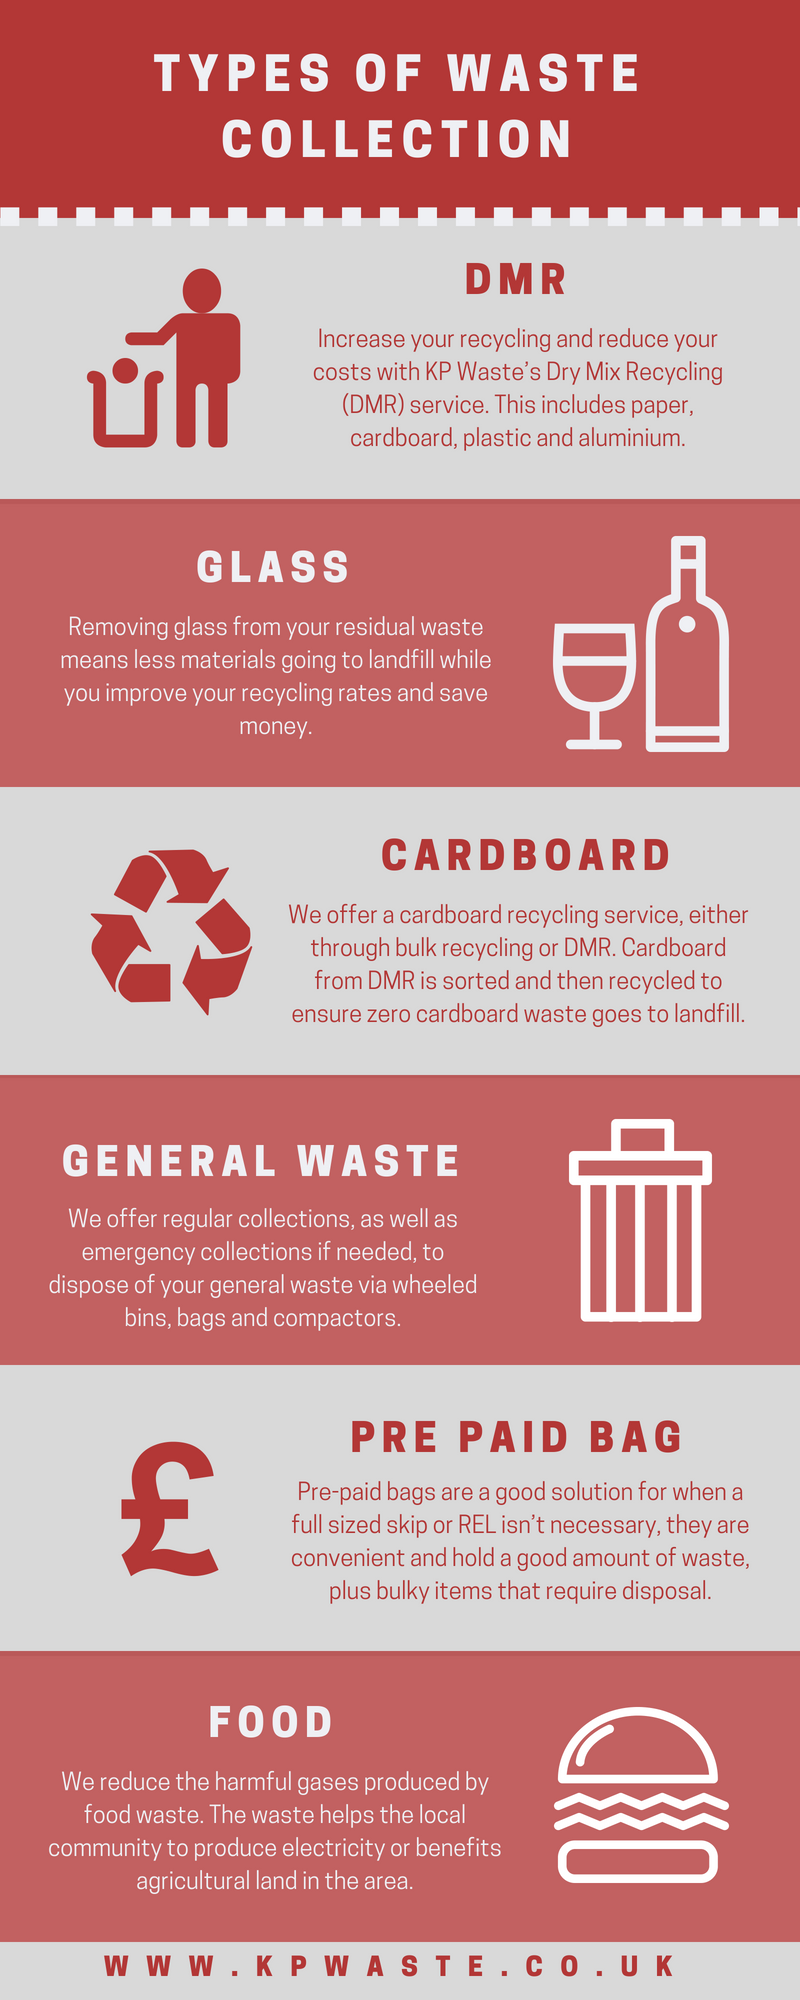 types-of-waste-collection-infographic-lkrllc